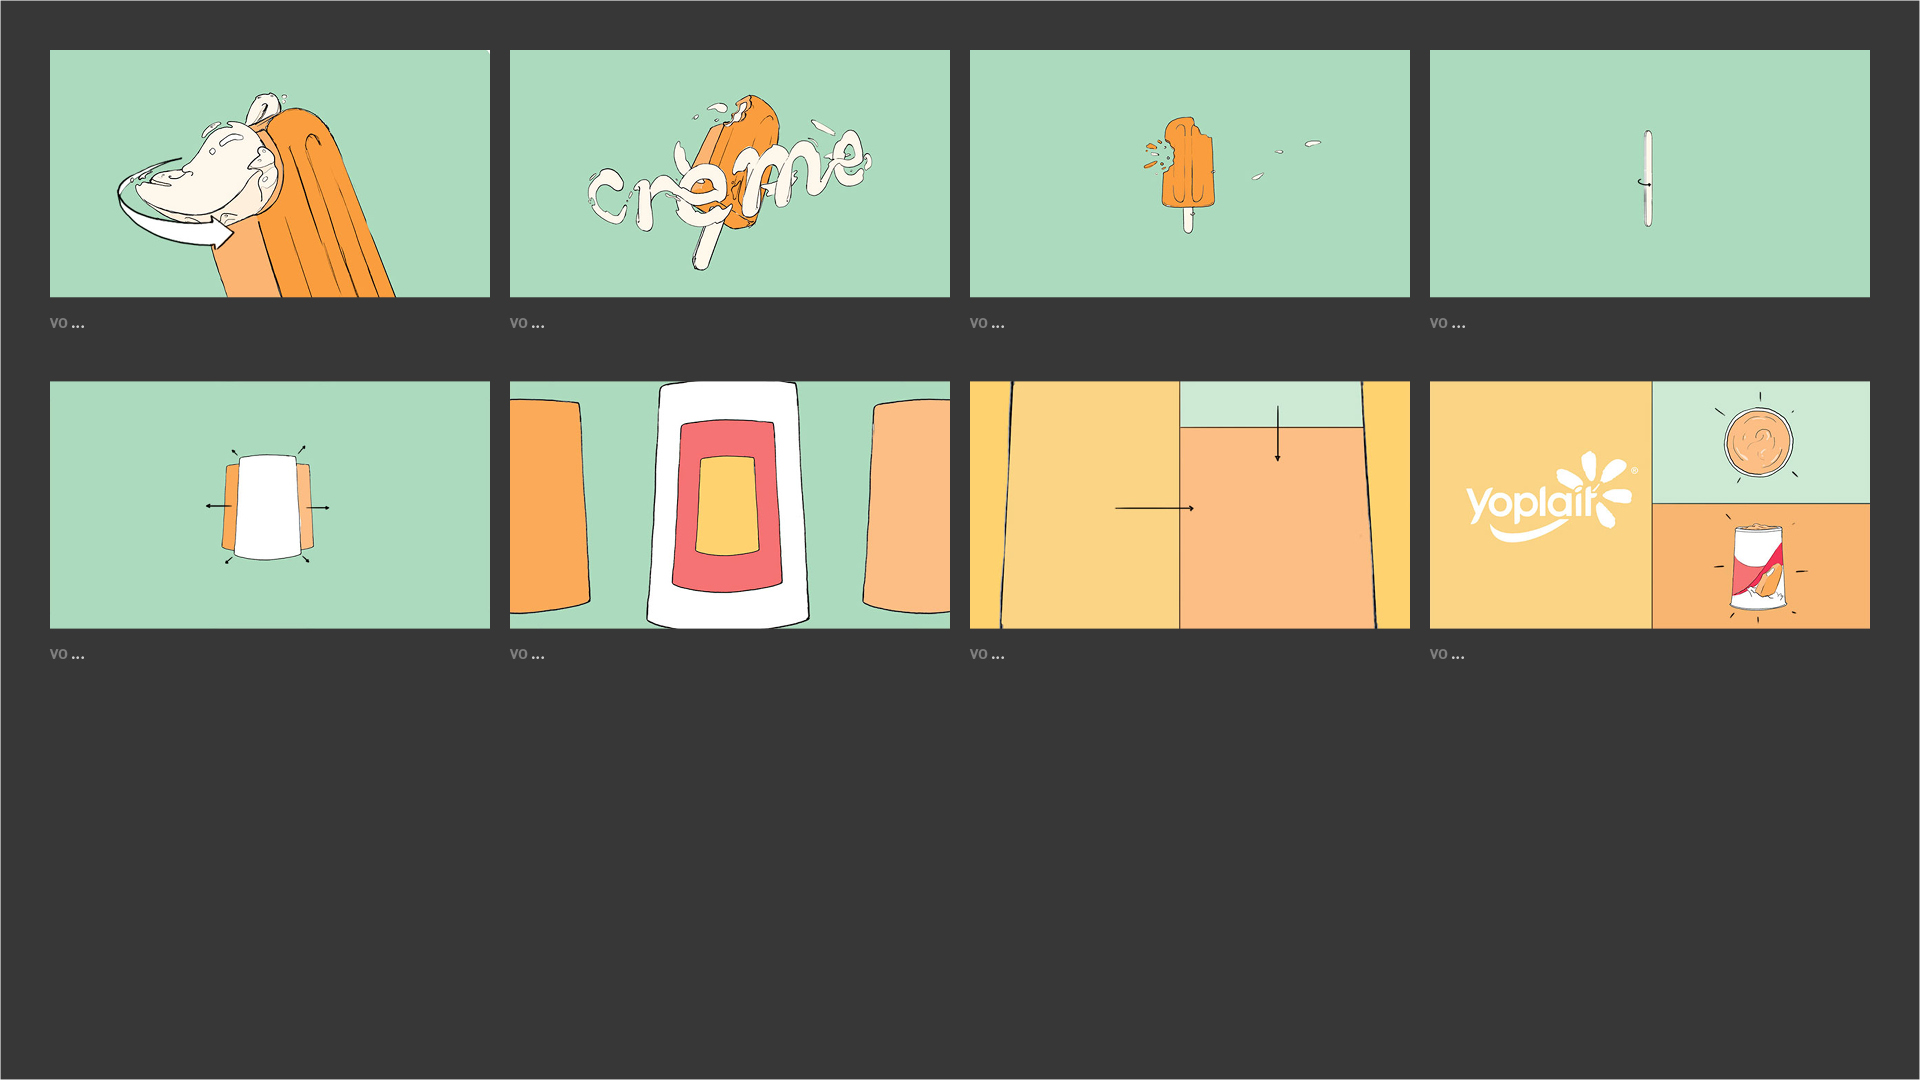 Yoplait - Orange & Cream Storyboard 02